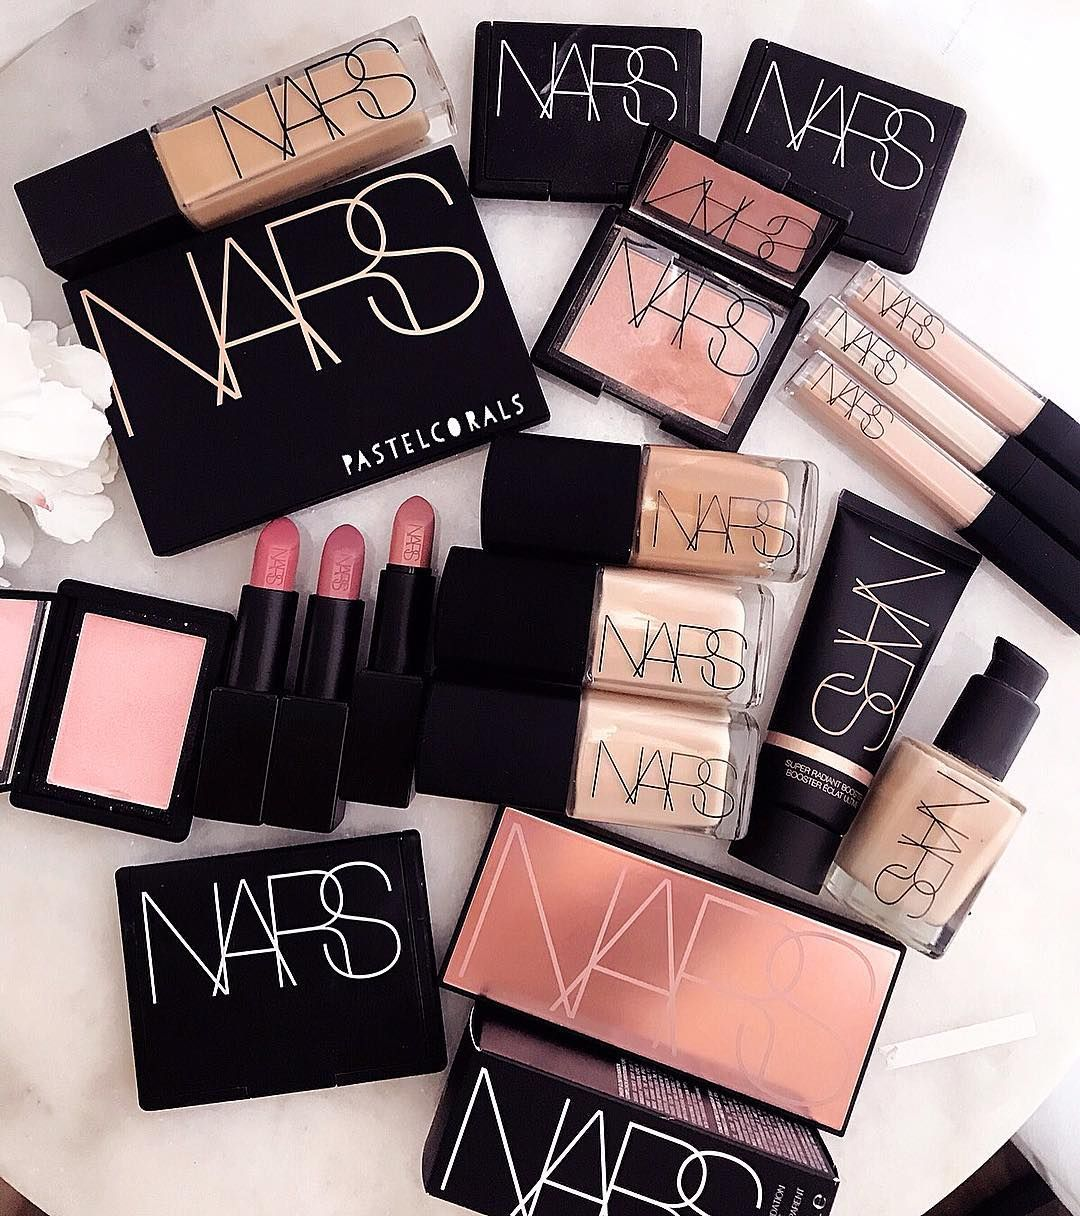 NARS BABYYYY ♥️ what's your fav narsissist Products